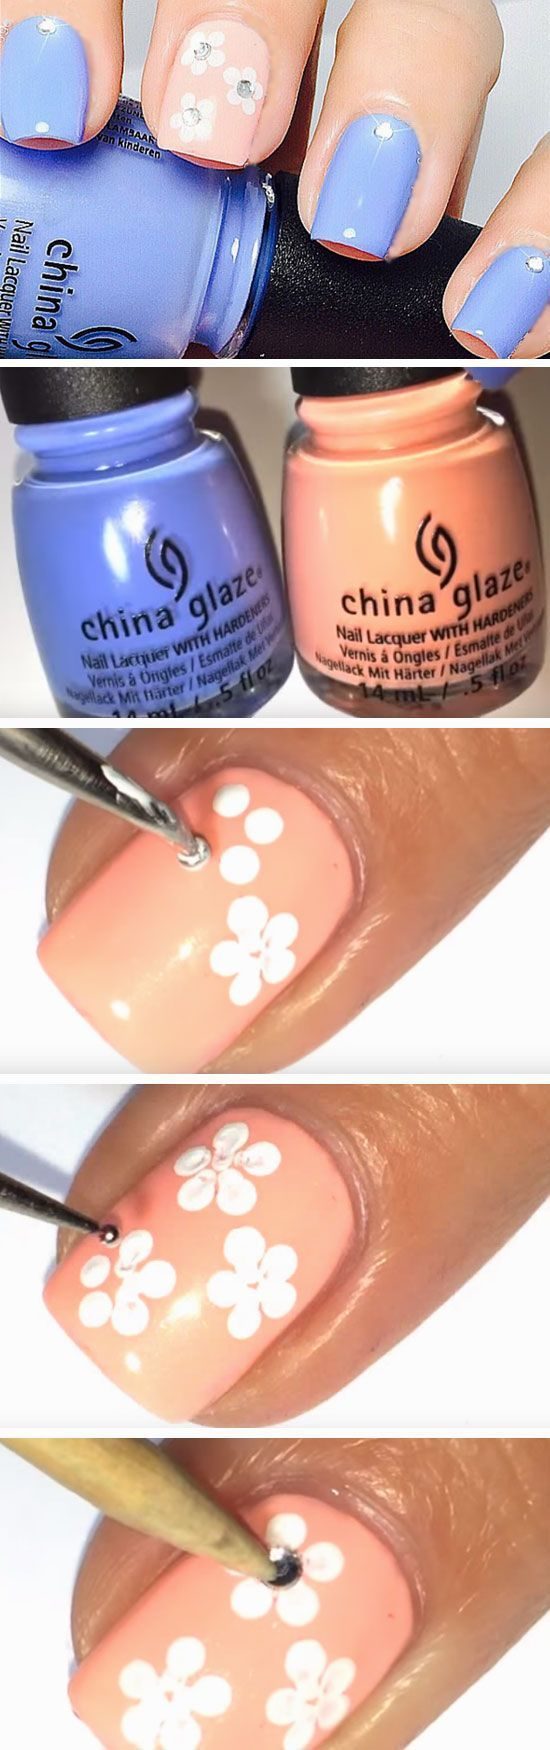 Cool easy spring nail designs for short nails nails pinterest